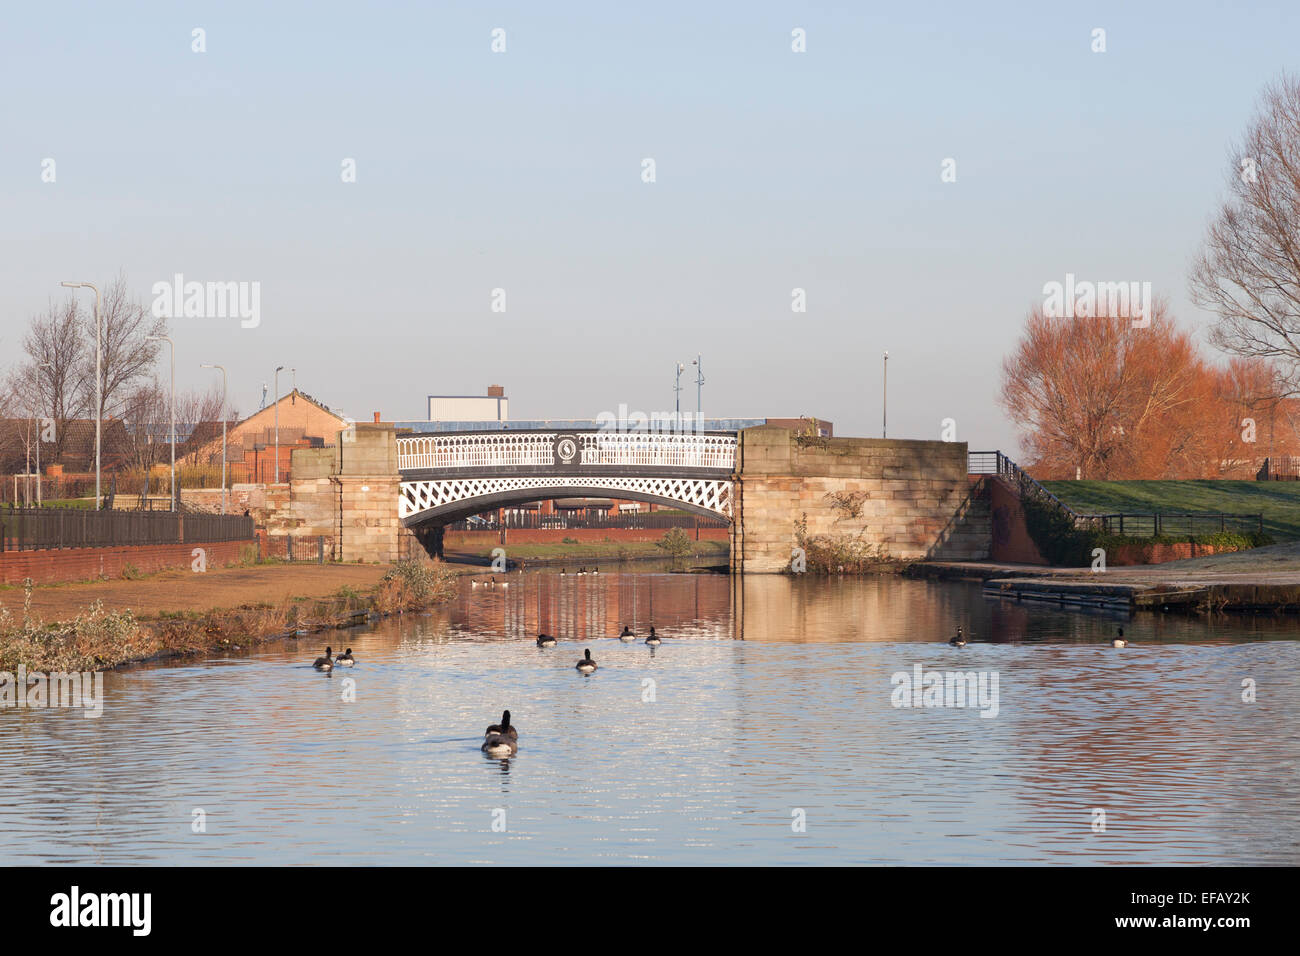 A bridge crosses the Leeds and Liverpool Canal near Stanley Dock in Liverpool Stock Photo